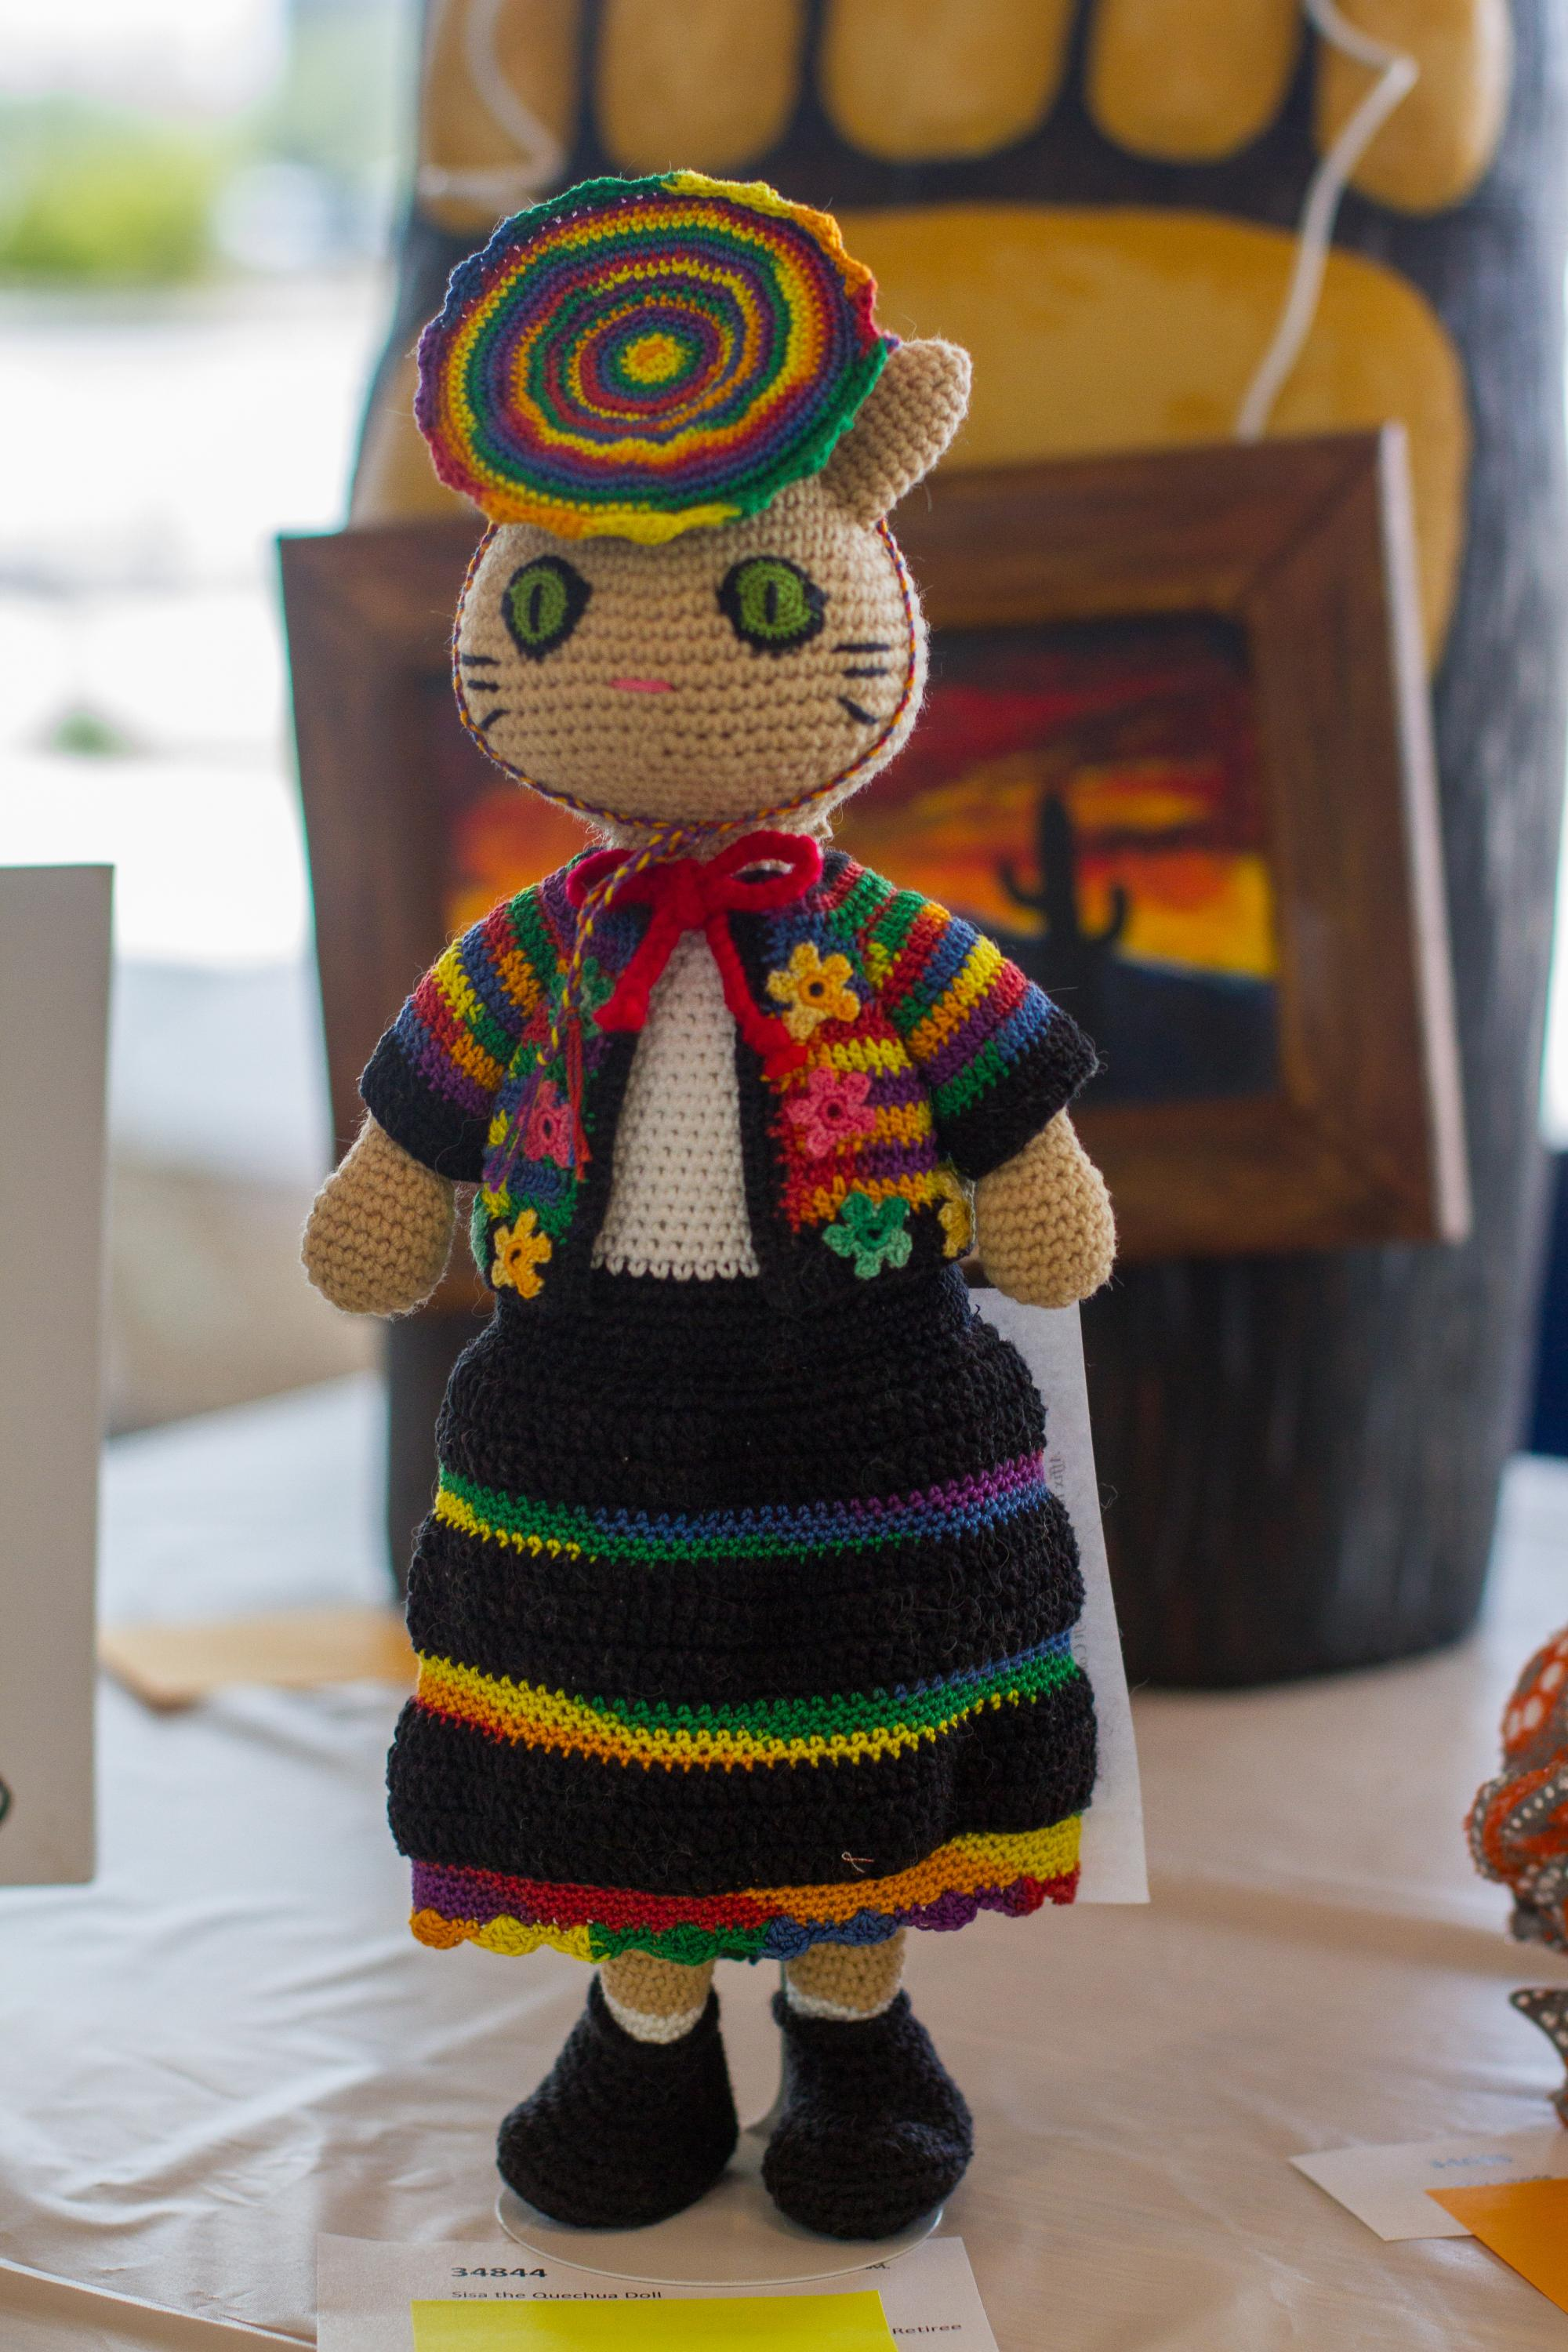 """""""Sisa the Quechua Doll"""" by Varvara Zemskova, an immediate family member of an employee, first-place winner in the amateur category"""